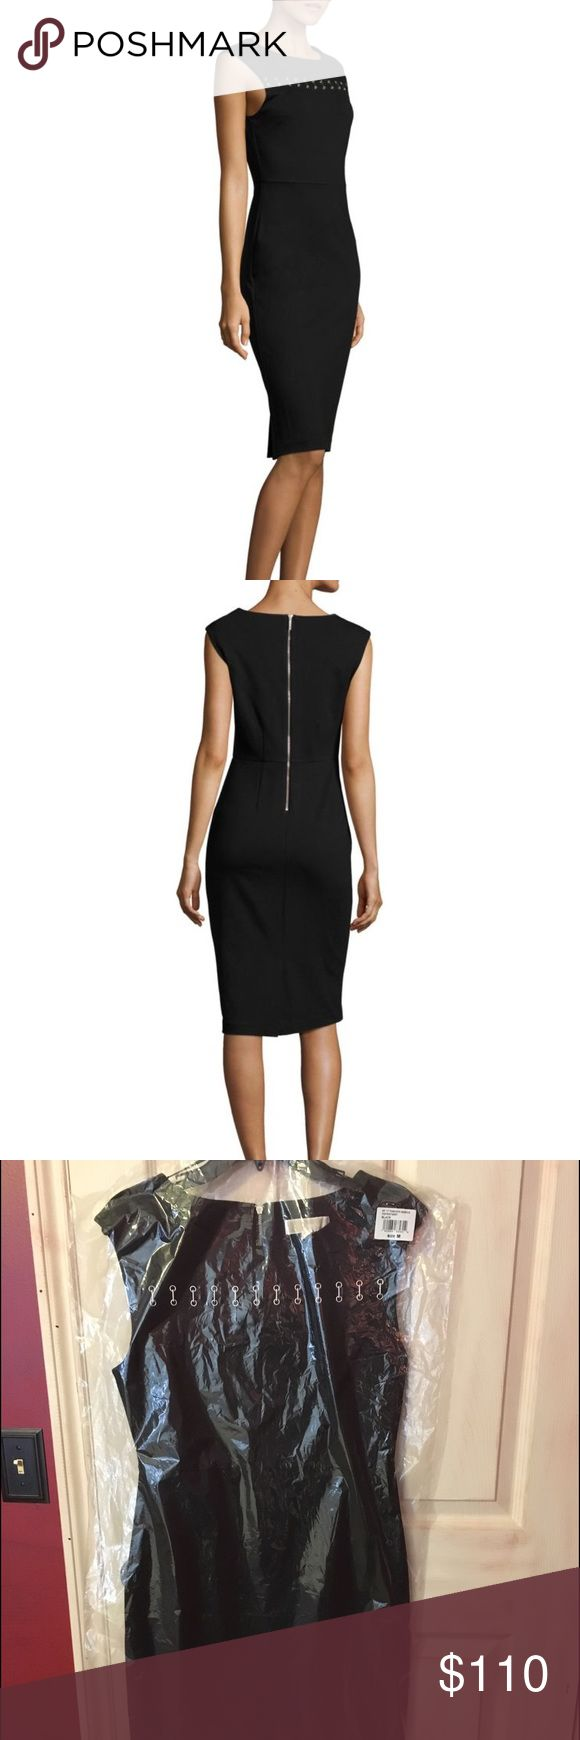 Michael Kors black shealth dress A grommet and bar design across the front yoke adds a contemporary touch to this polished sheath dress. SKU: 8882541 Seaming details create a structured look. Round neckline. Sleeveless construction with extended shoulders. Exposed back zipper closure. Bosom darts. Back vent. Straight hemline. 69% viscose, 27% nylon, 4% elastane. Machine wash cold, dry flat. Imported. Product measurements were taken using size SM. Please note that measurements may vary by…